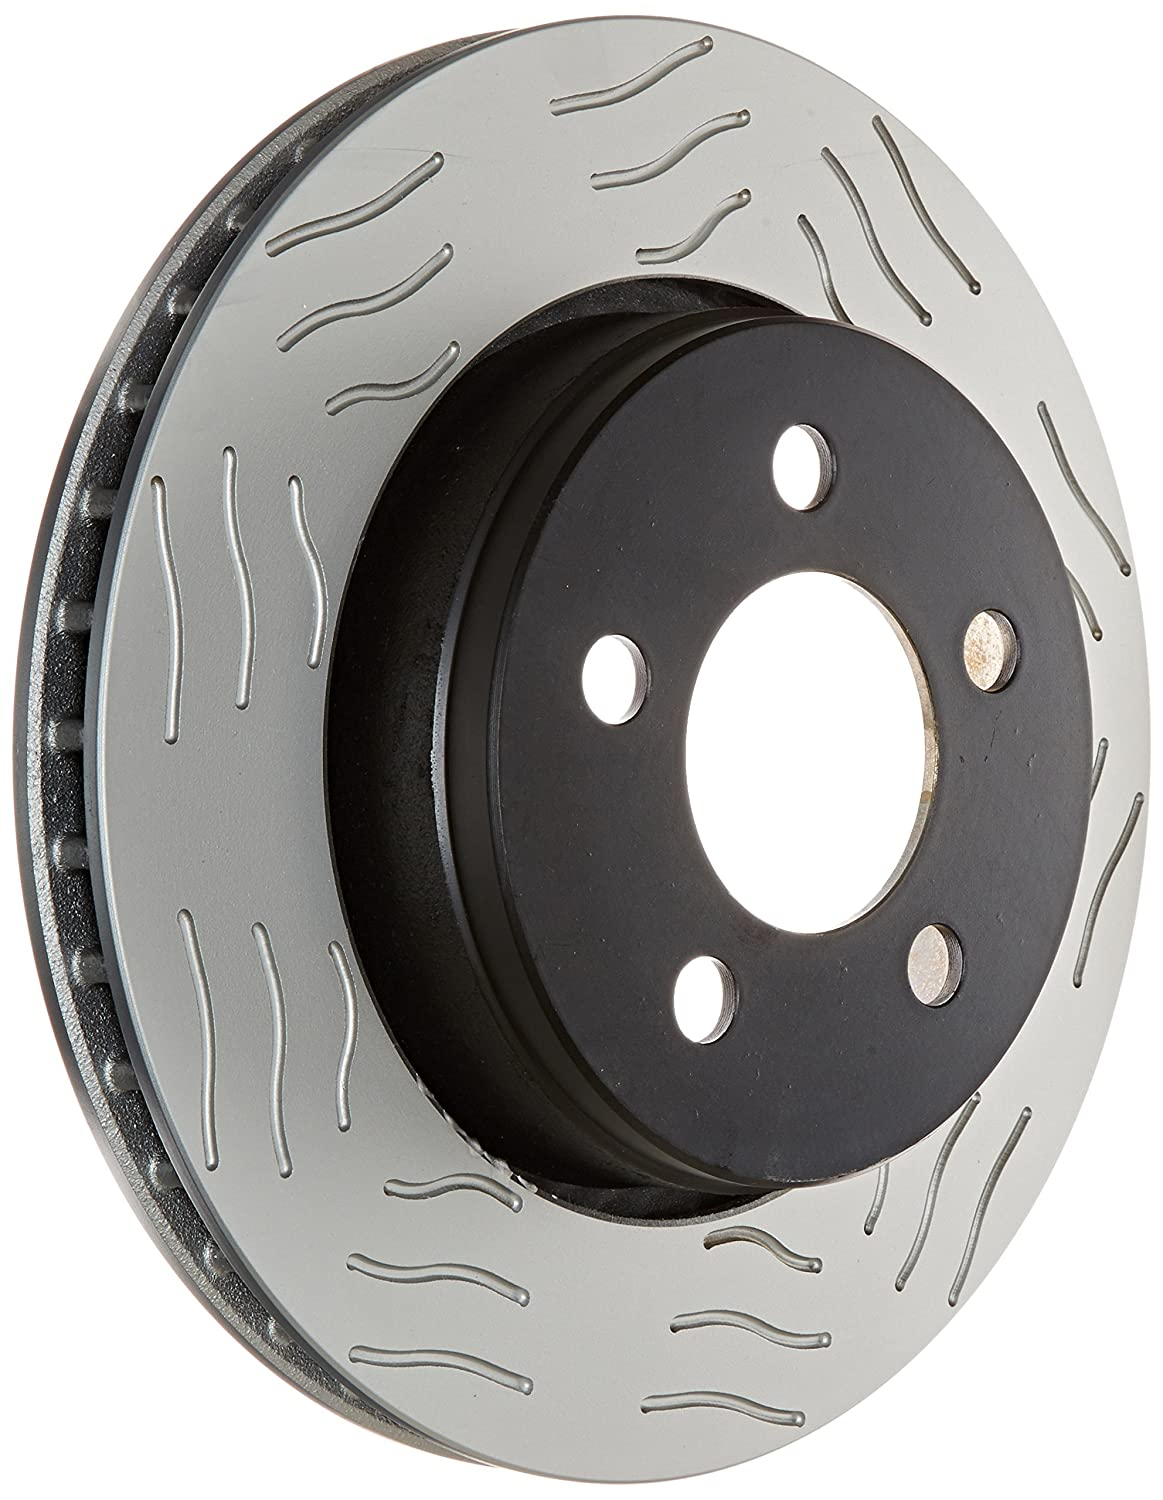 ACDelco 18A2469SD Specialty Performance Front Disc Brake Rotor Assembly for Severe Duty